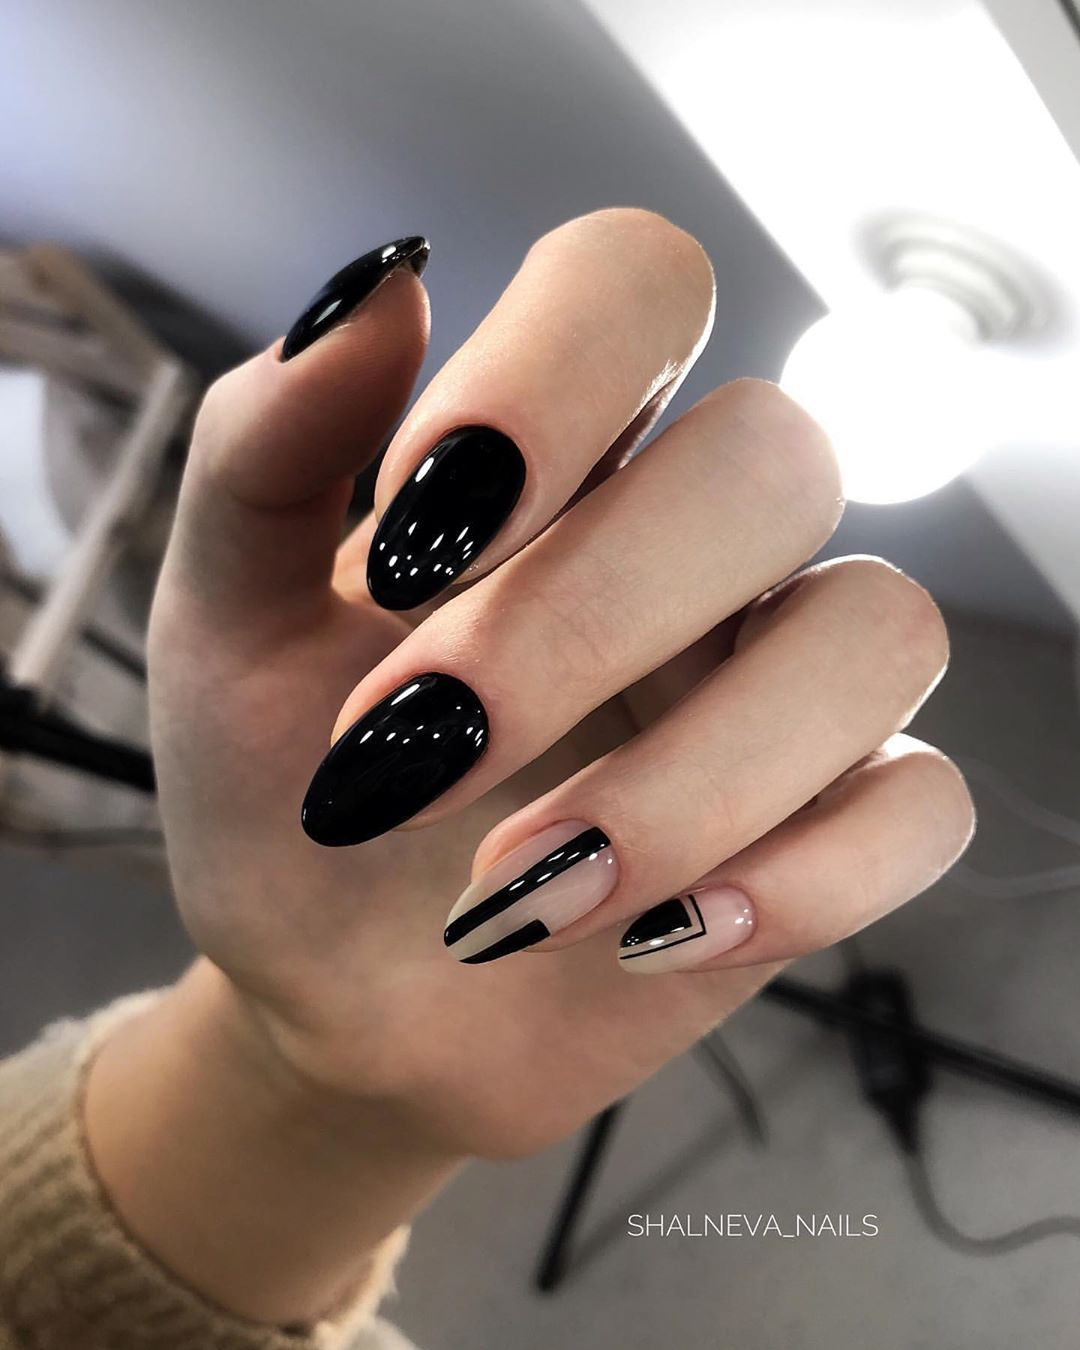 60 Cute Winter Nails Designs to Inspire Your Winter Mood images 1